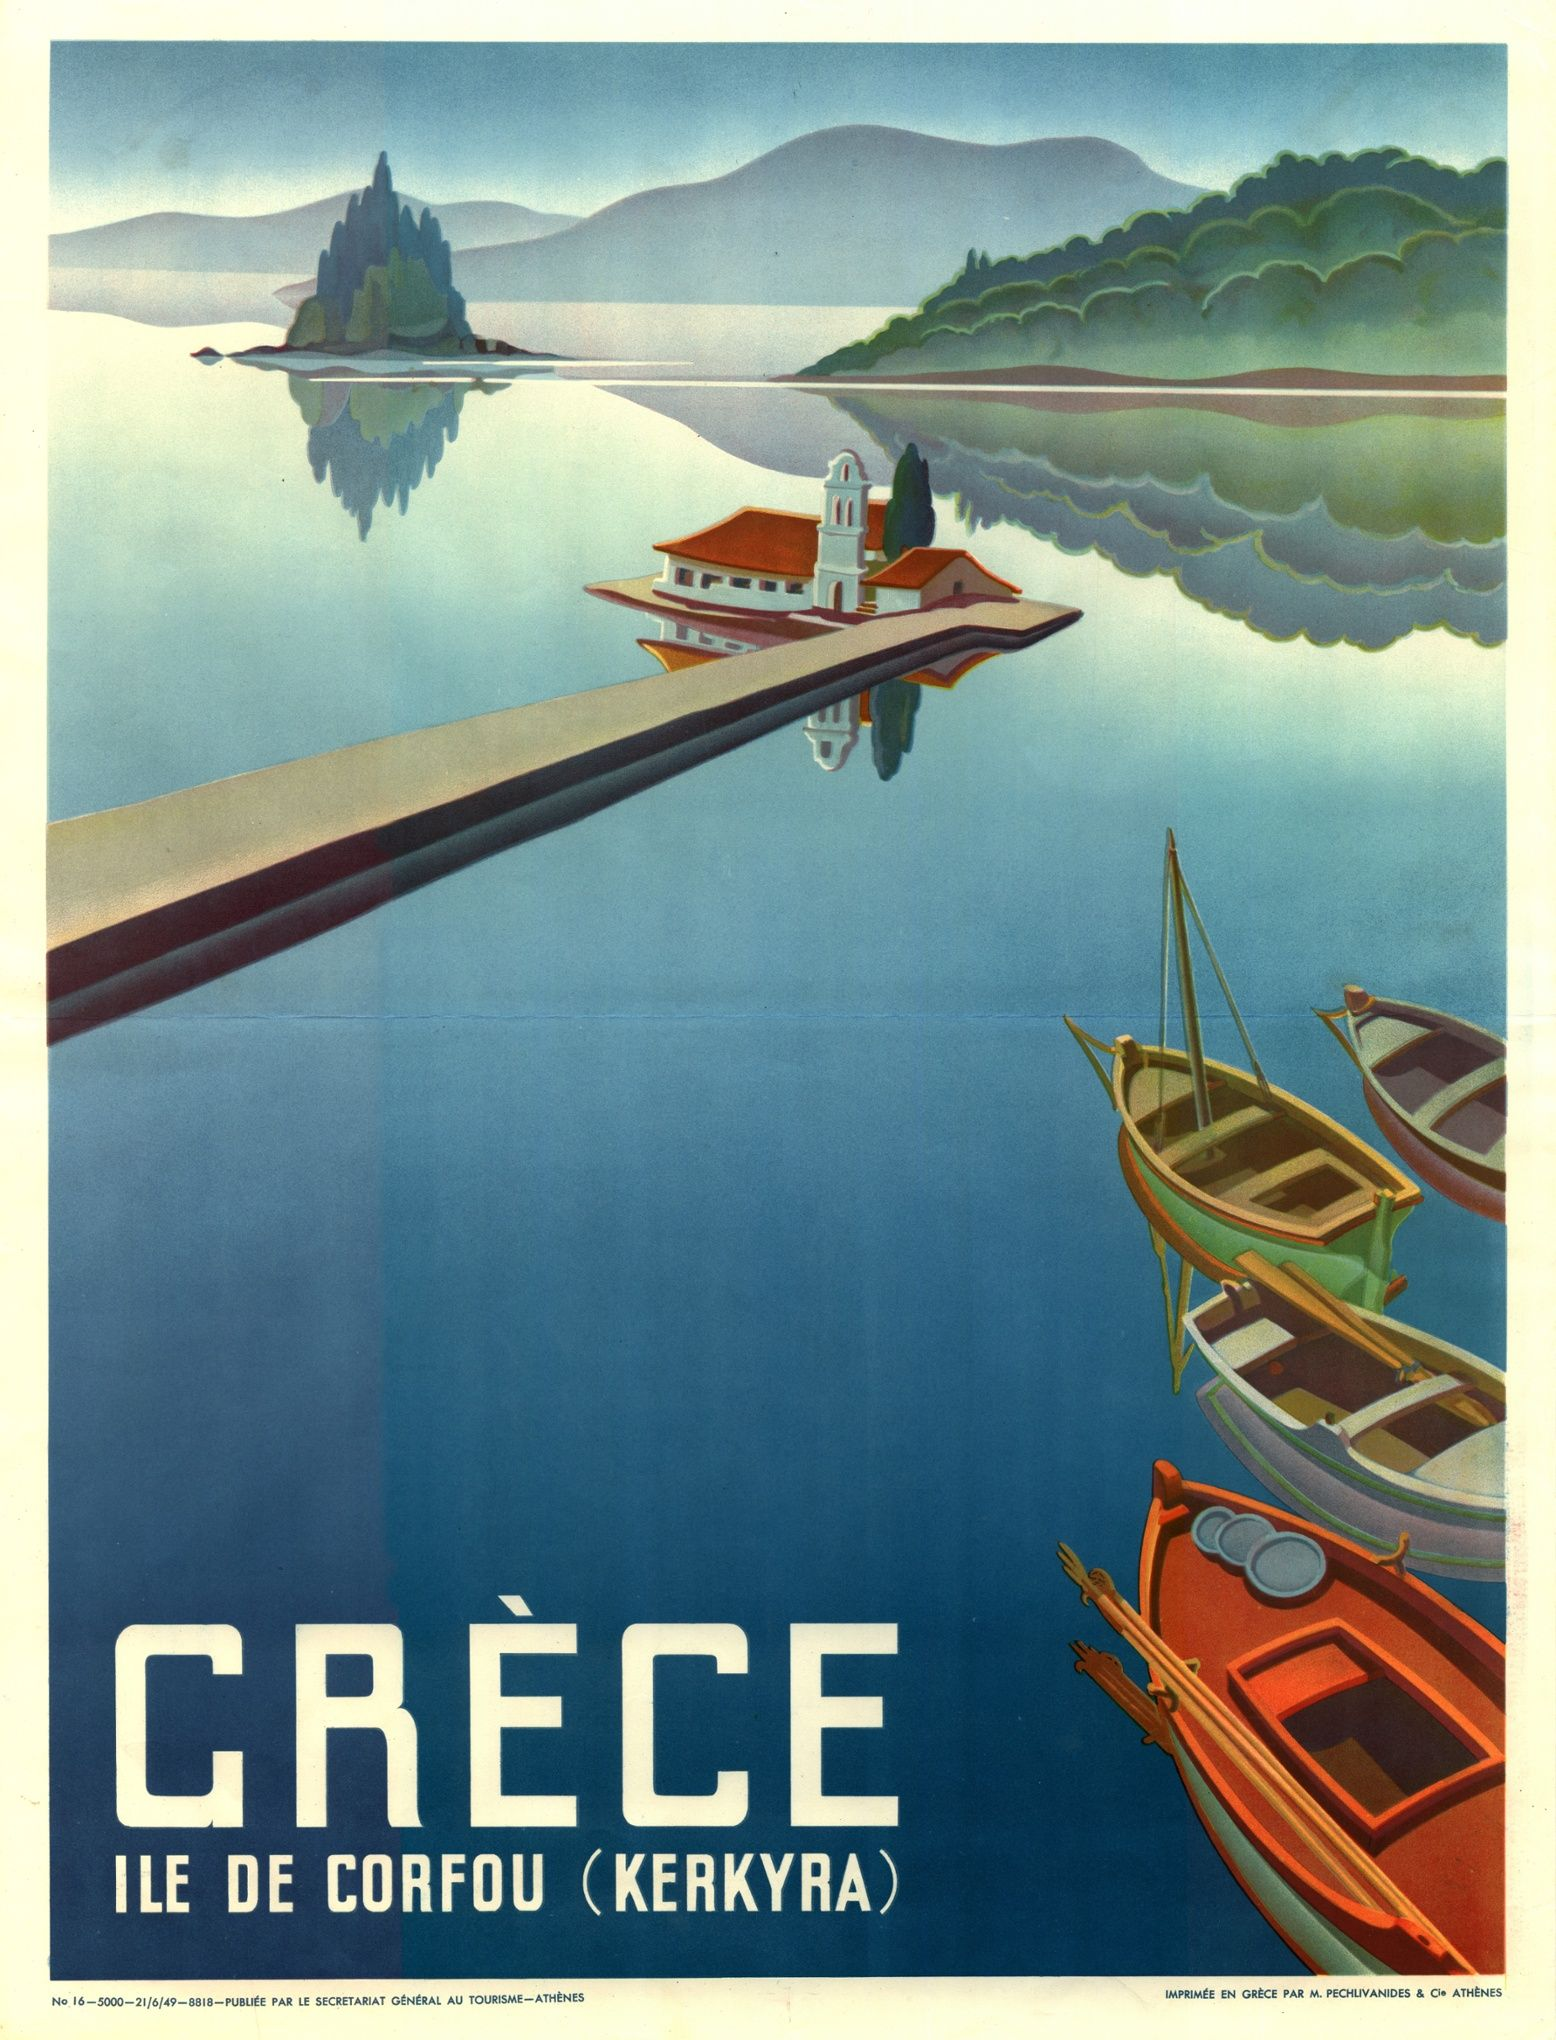 Holidays In Greece A History In Tourism Posters Tourism Poster Travel Posters Vintage Travel Posters